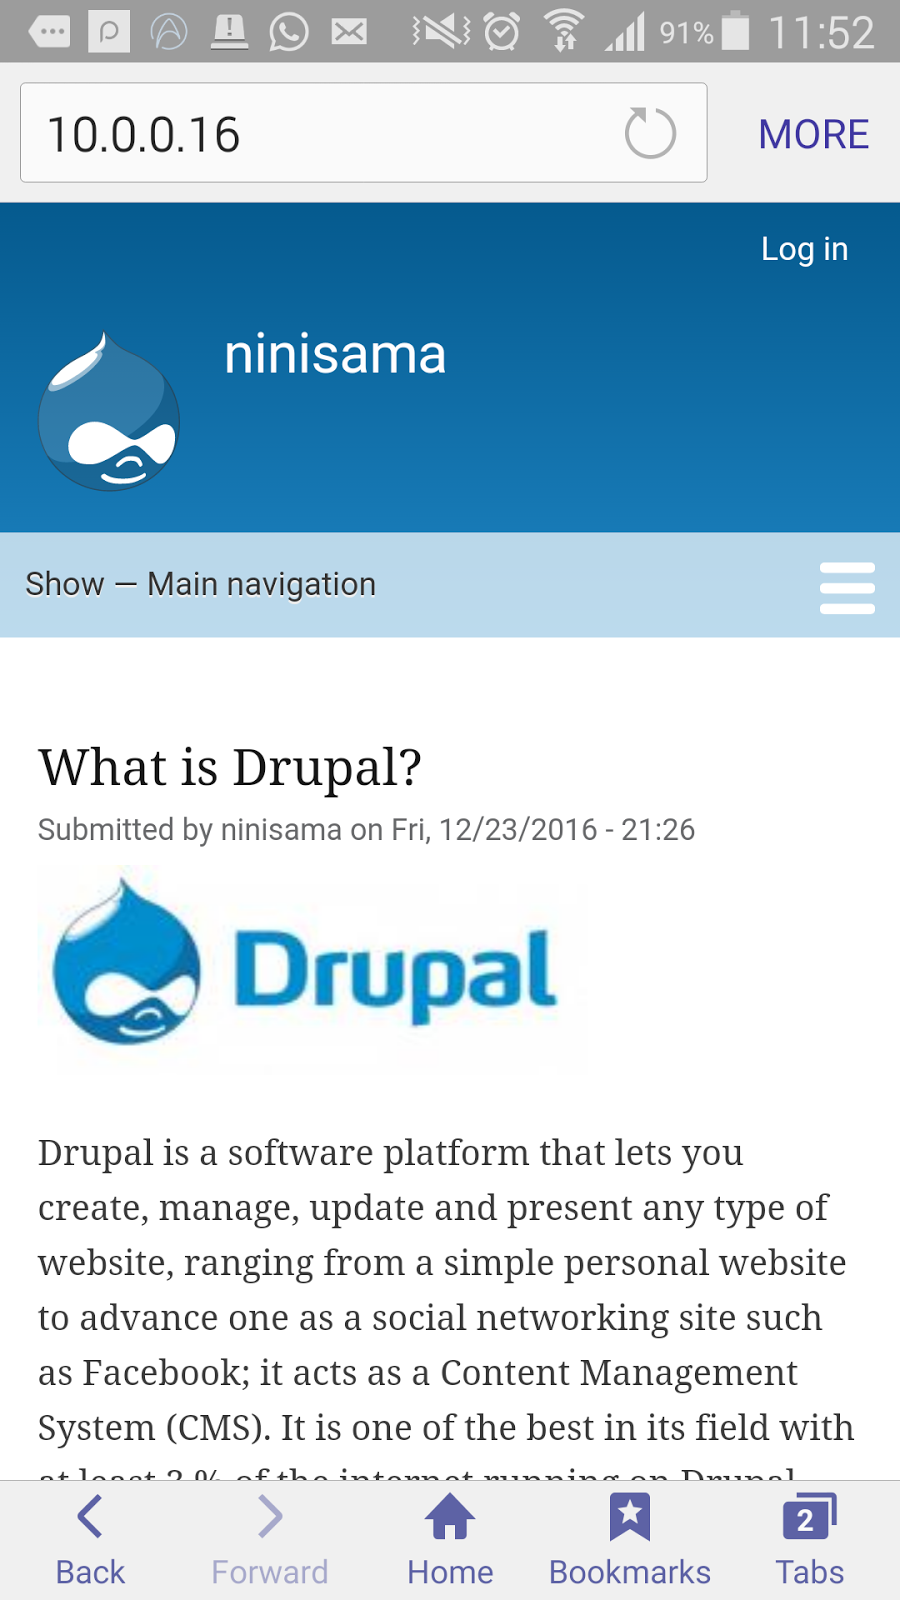 Test Drupal 8 default theme on Multiple Devices in Multiple